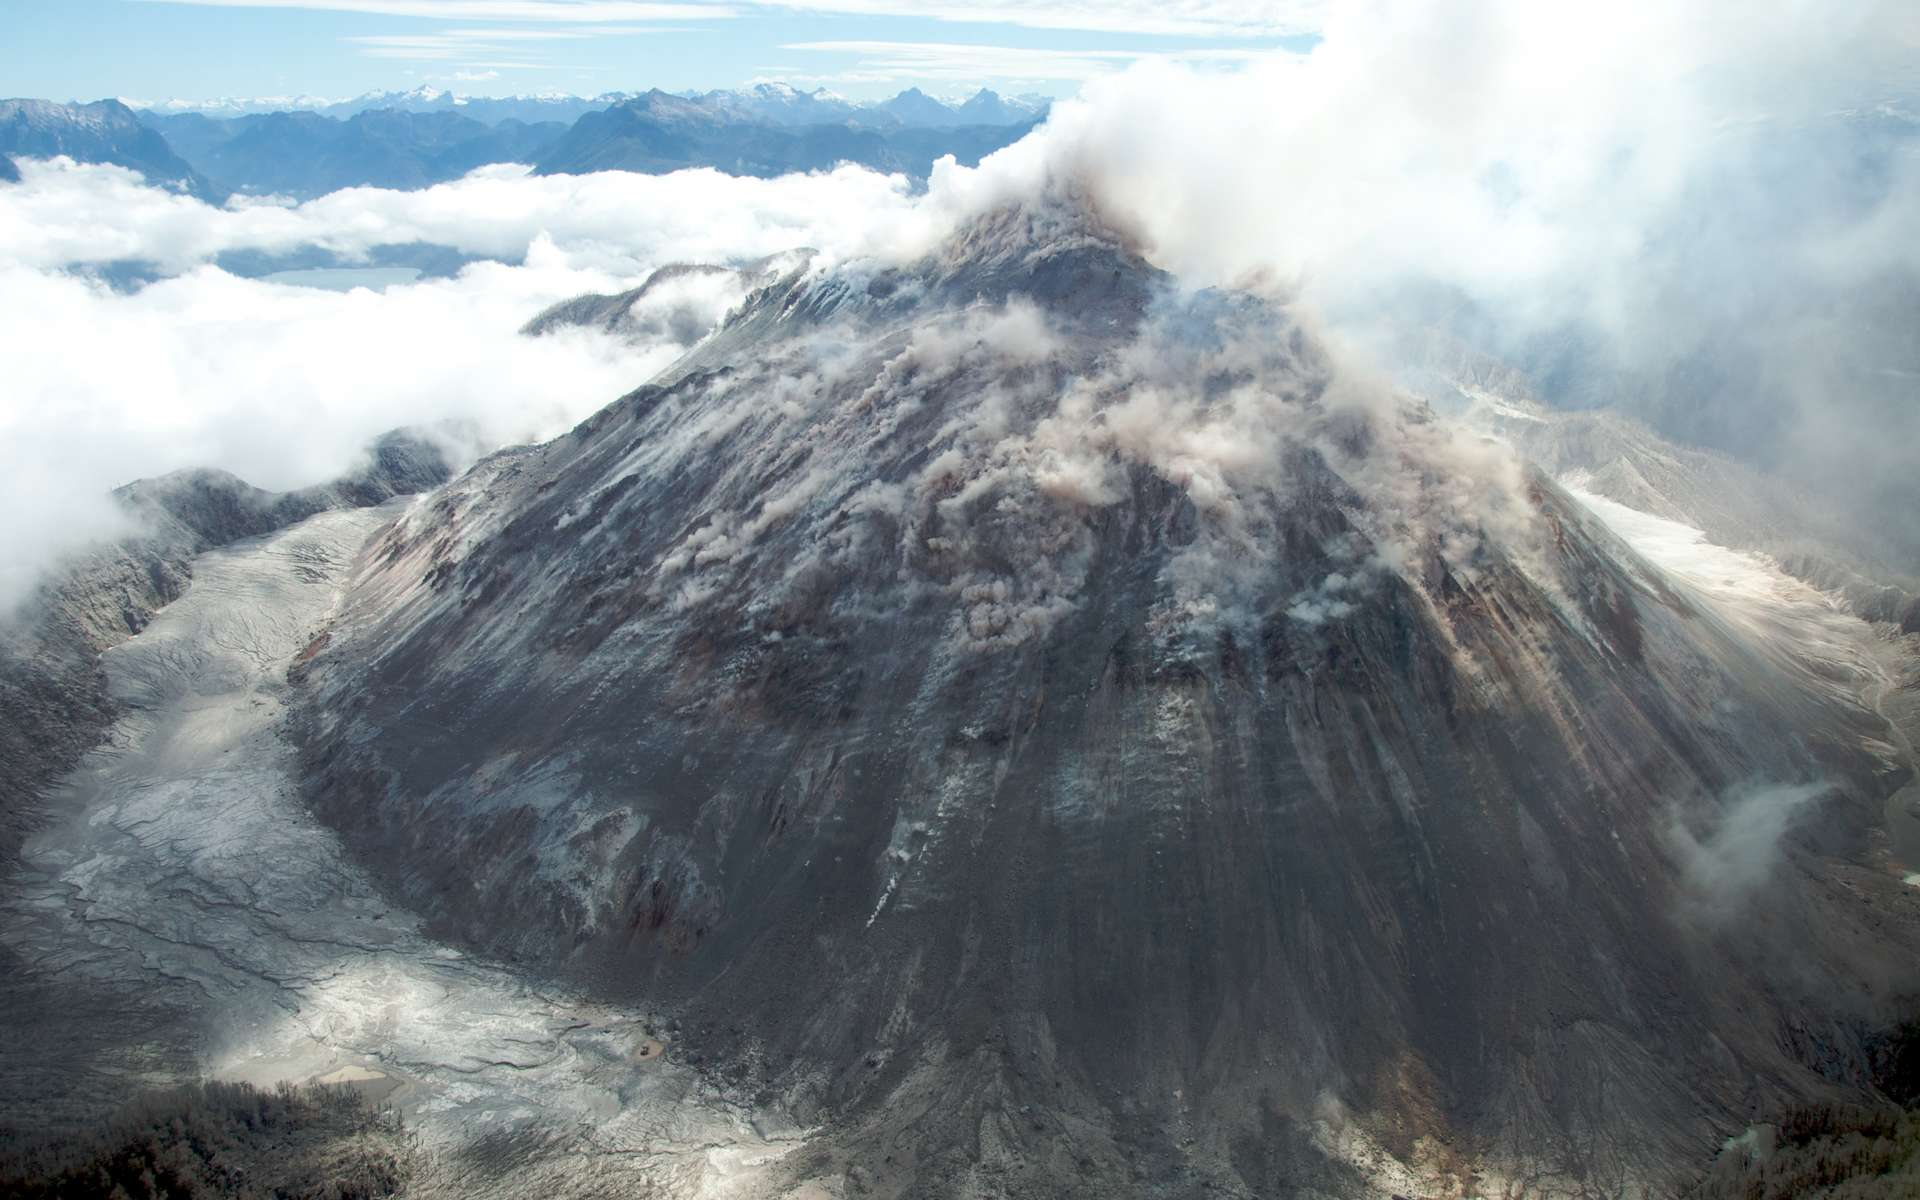 Vue du volcan Chaitén en éruption, en 2009, au Sud du Chili, avec son dôme de lave rhyolitique. © CC by-sa 2.0